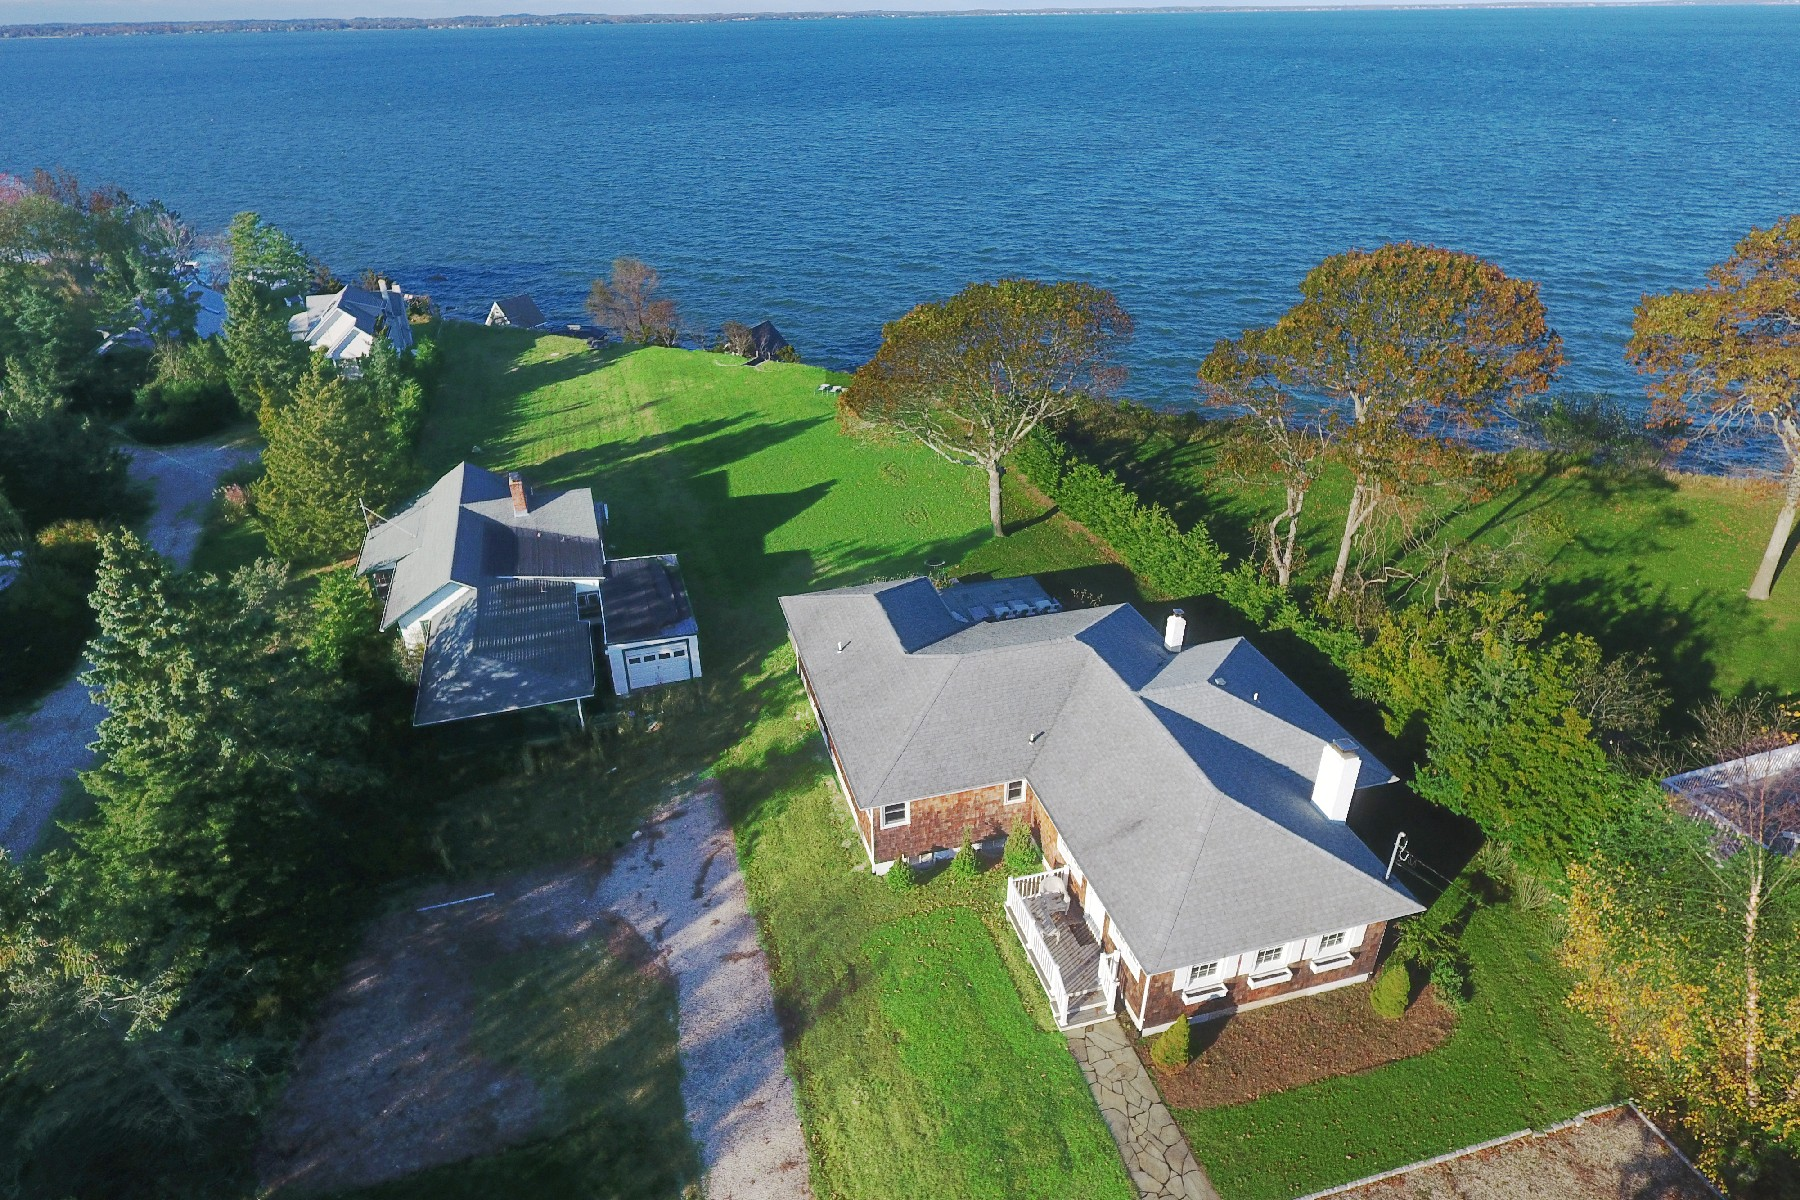 Single Family Home for Active at 98/102 Red Creek Rd , Hampton Bays, NY 11946 98/102 Red Creek Rd Hampton Bays, New York 11946 United States